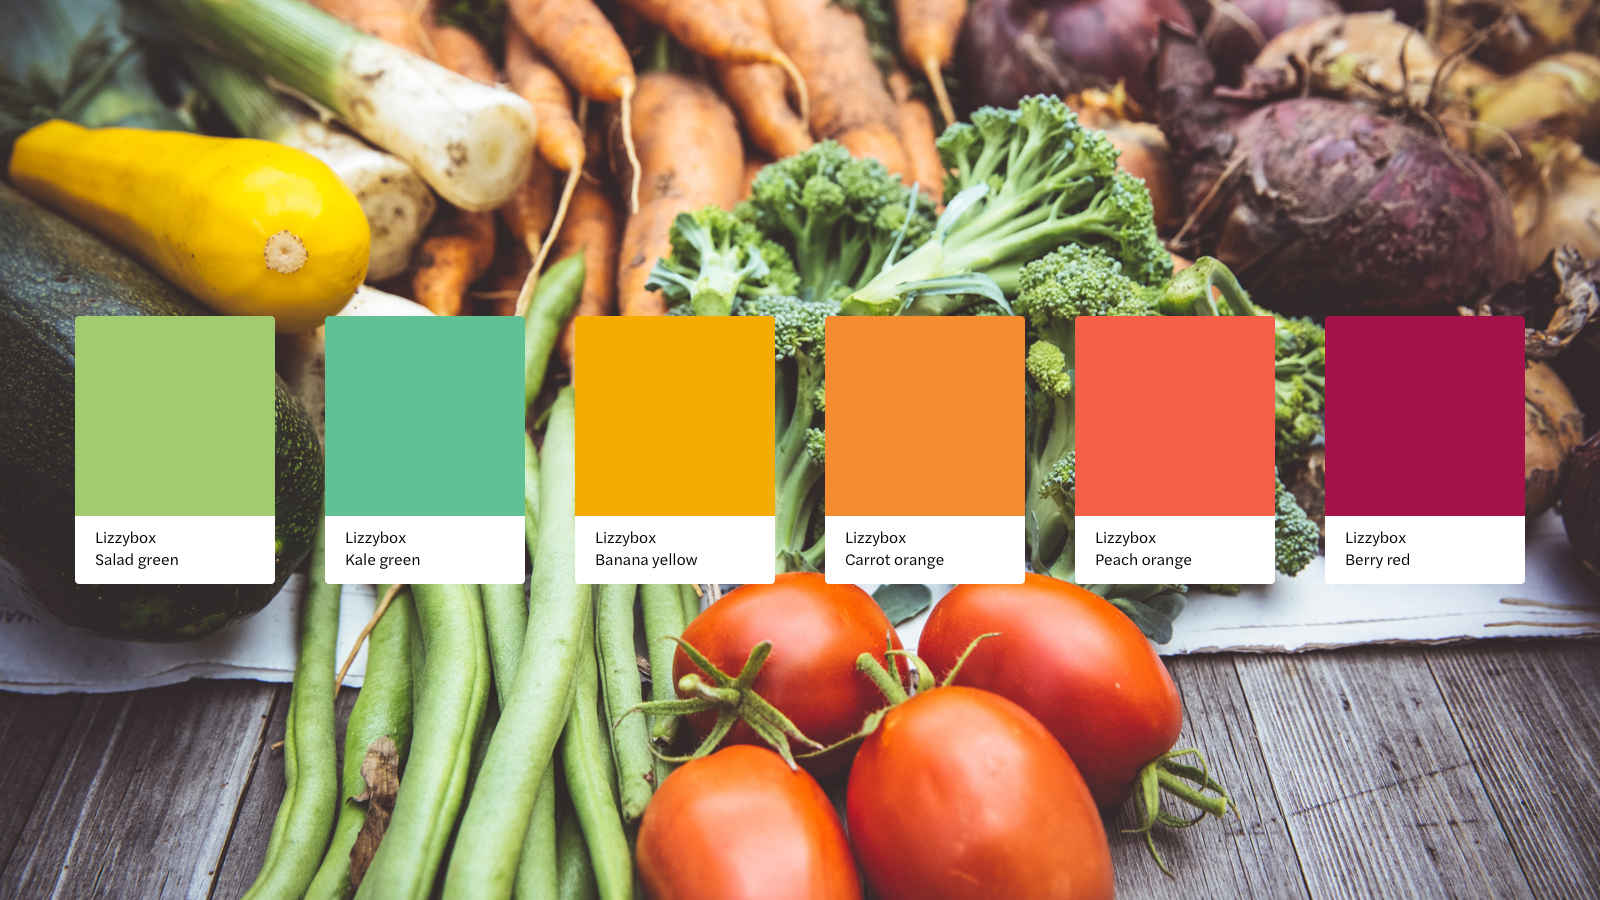 A colorful brand identity for getting healthy with Lizzybox